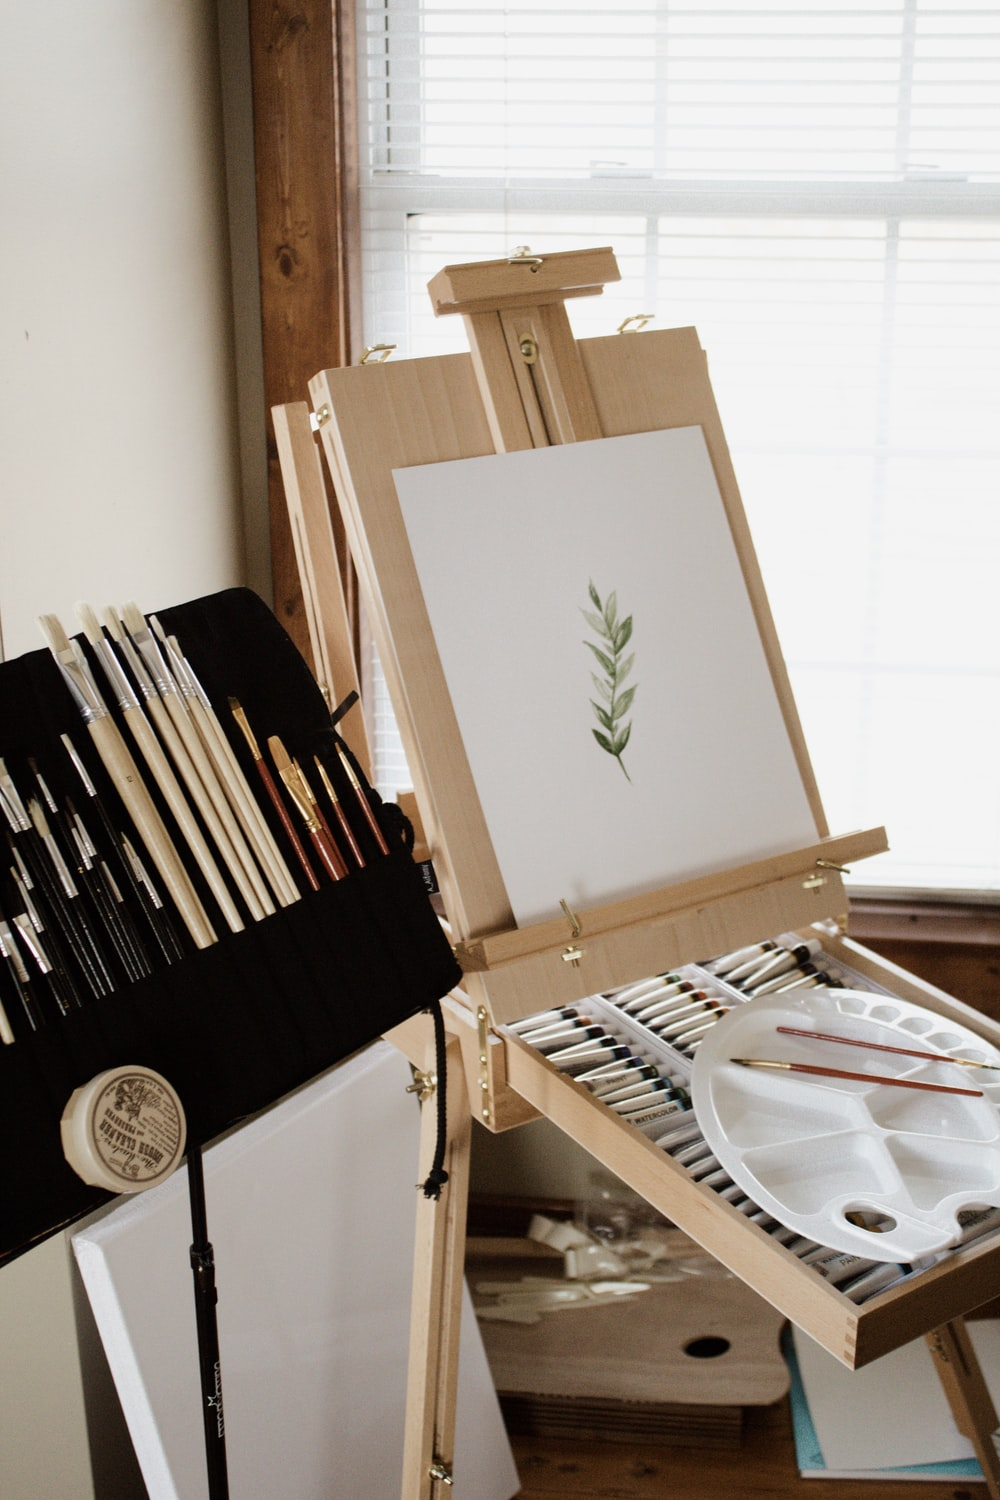 paint brushes beside a French easel and paint canvass